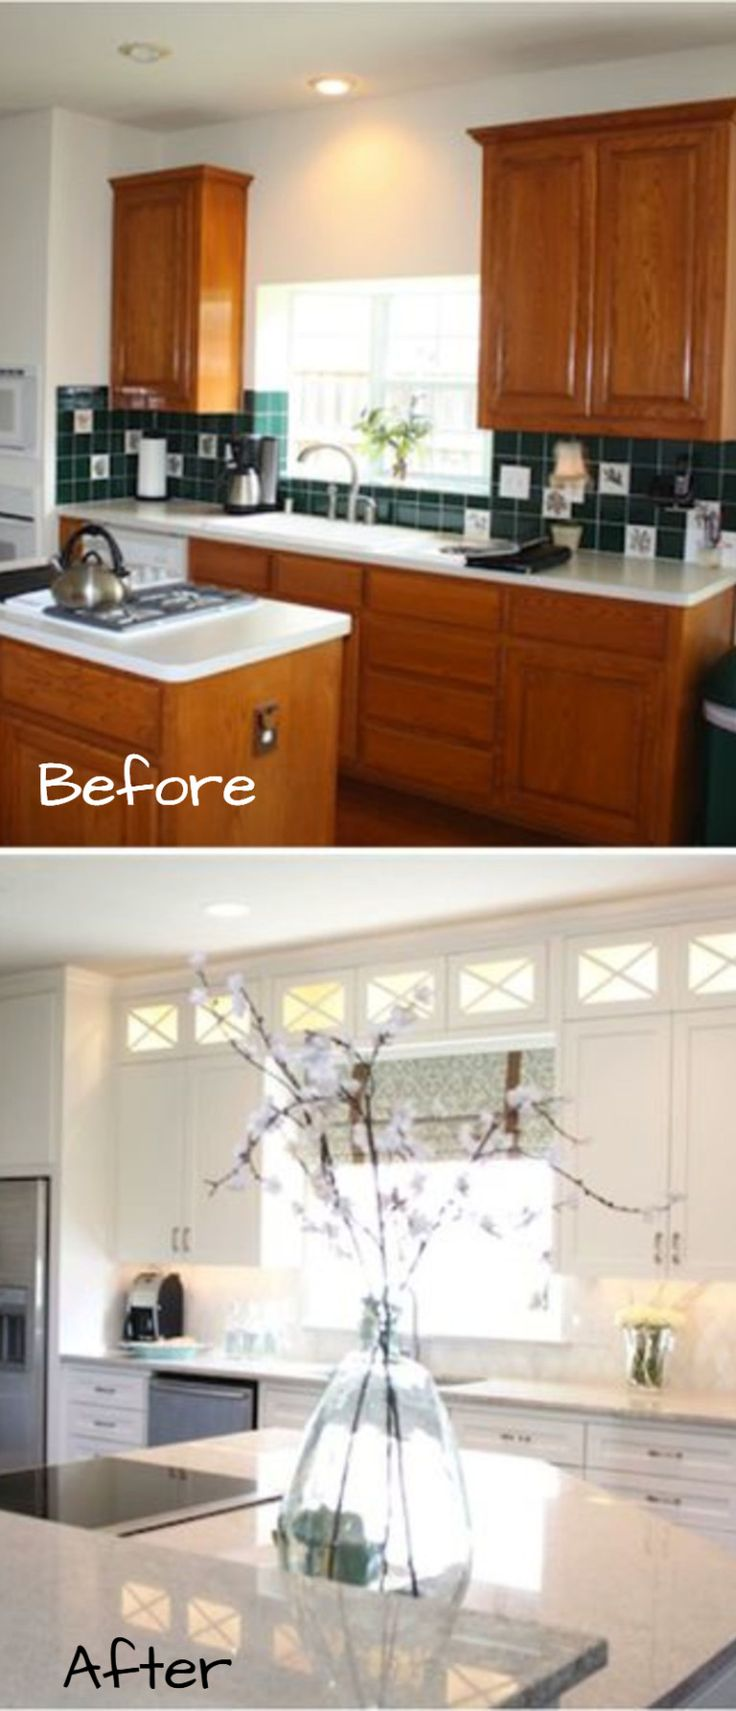 Before And After Small Kitchen: 114 Best DIY Home Decor • Images On Pinterest